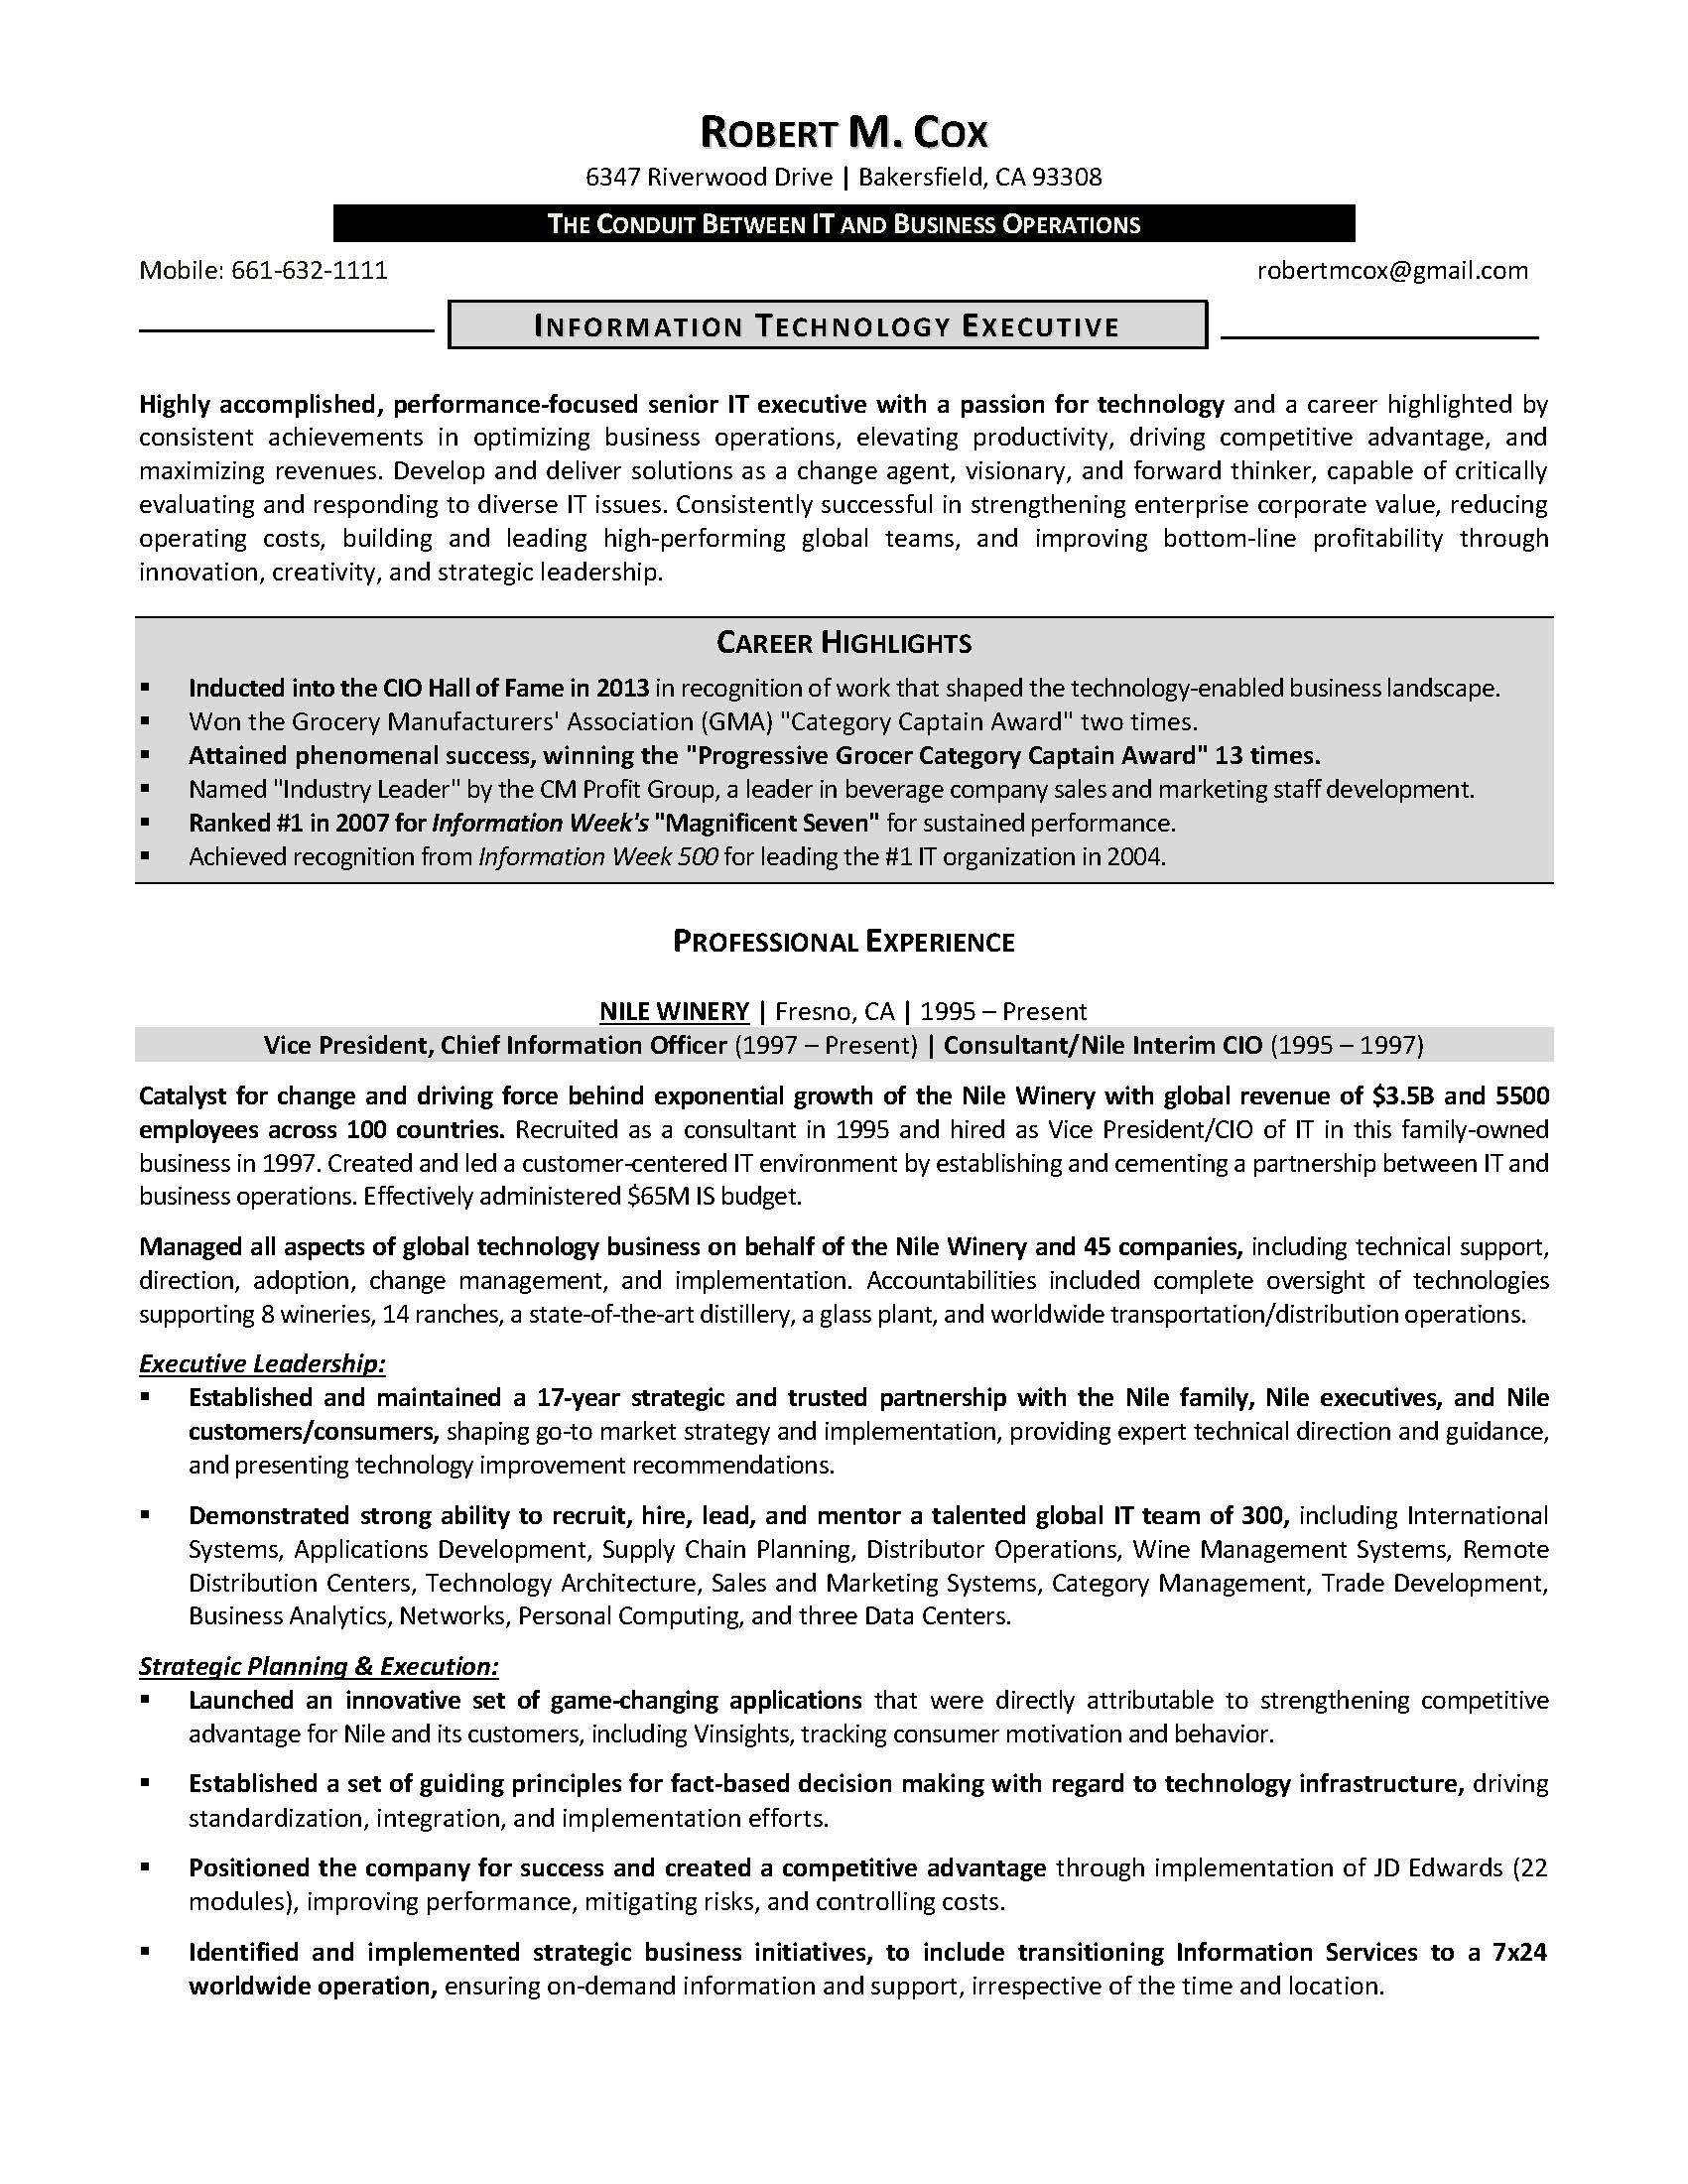 construction cover letter samples journeymen drywallers cover letter examples construction cover mason resume construction cover letter examples construction cover letter